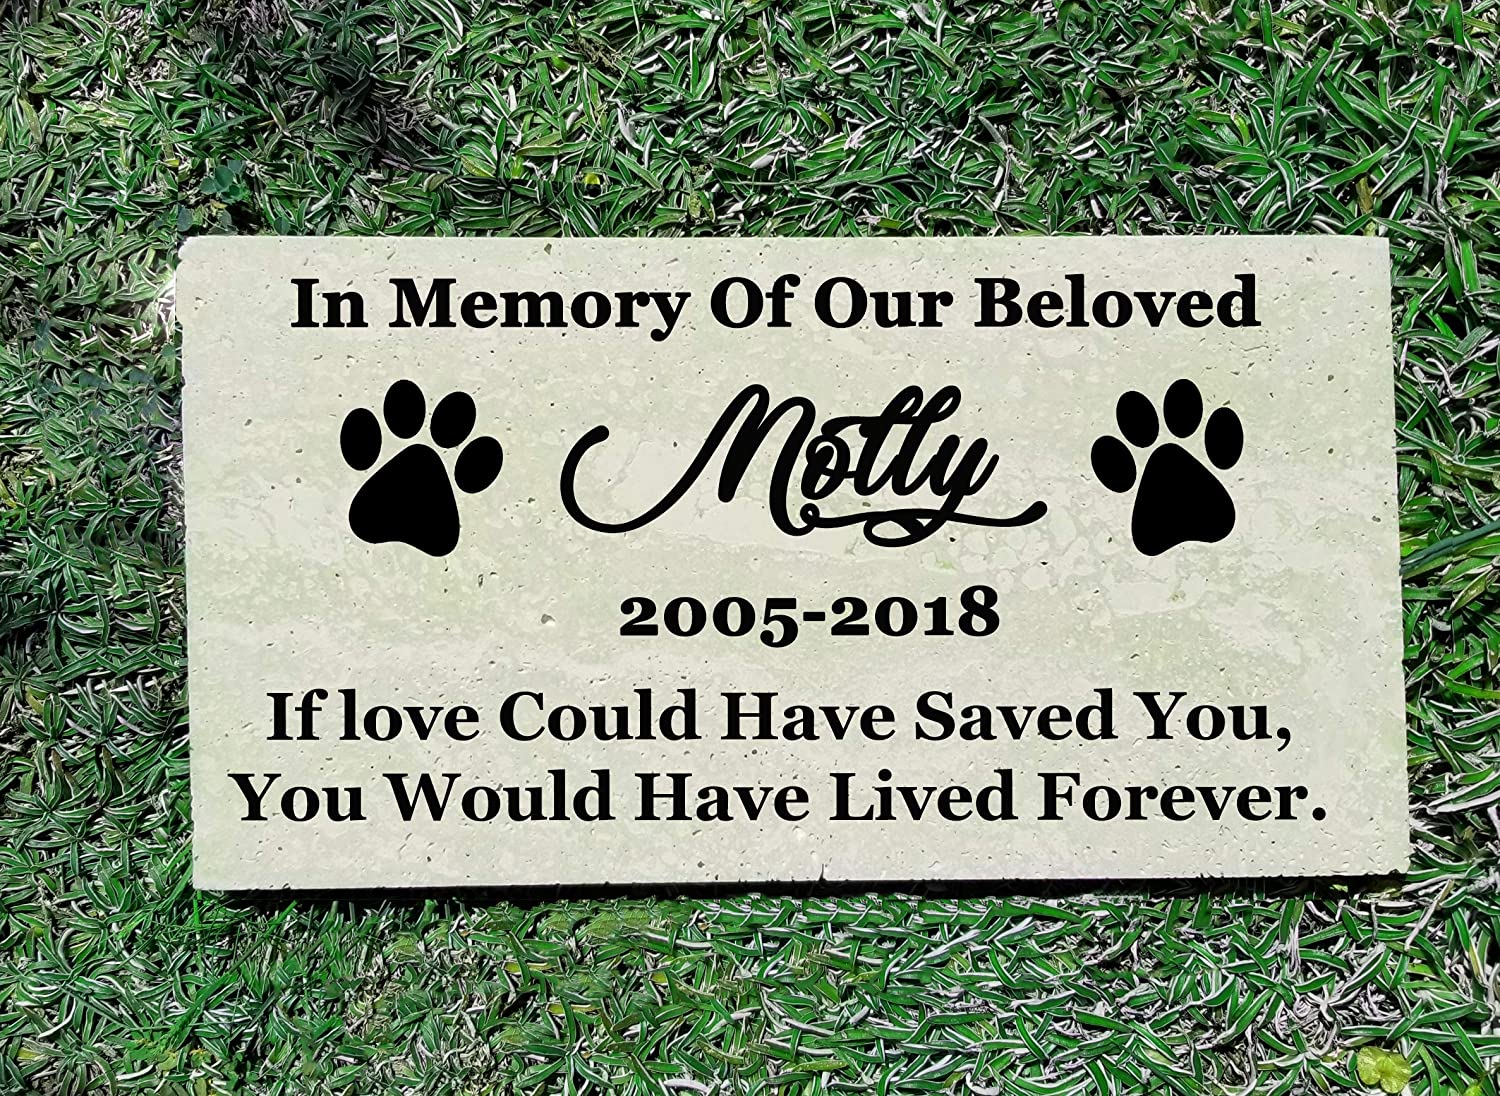 Personalize Memorial Stone, Grave Marker, Headstone for your Pet, Dog, Cat, Horse, Fish If love Could Have Saved You, You Would Have Lived Forever